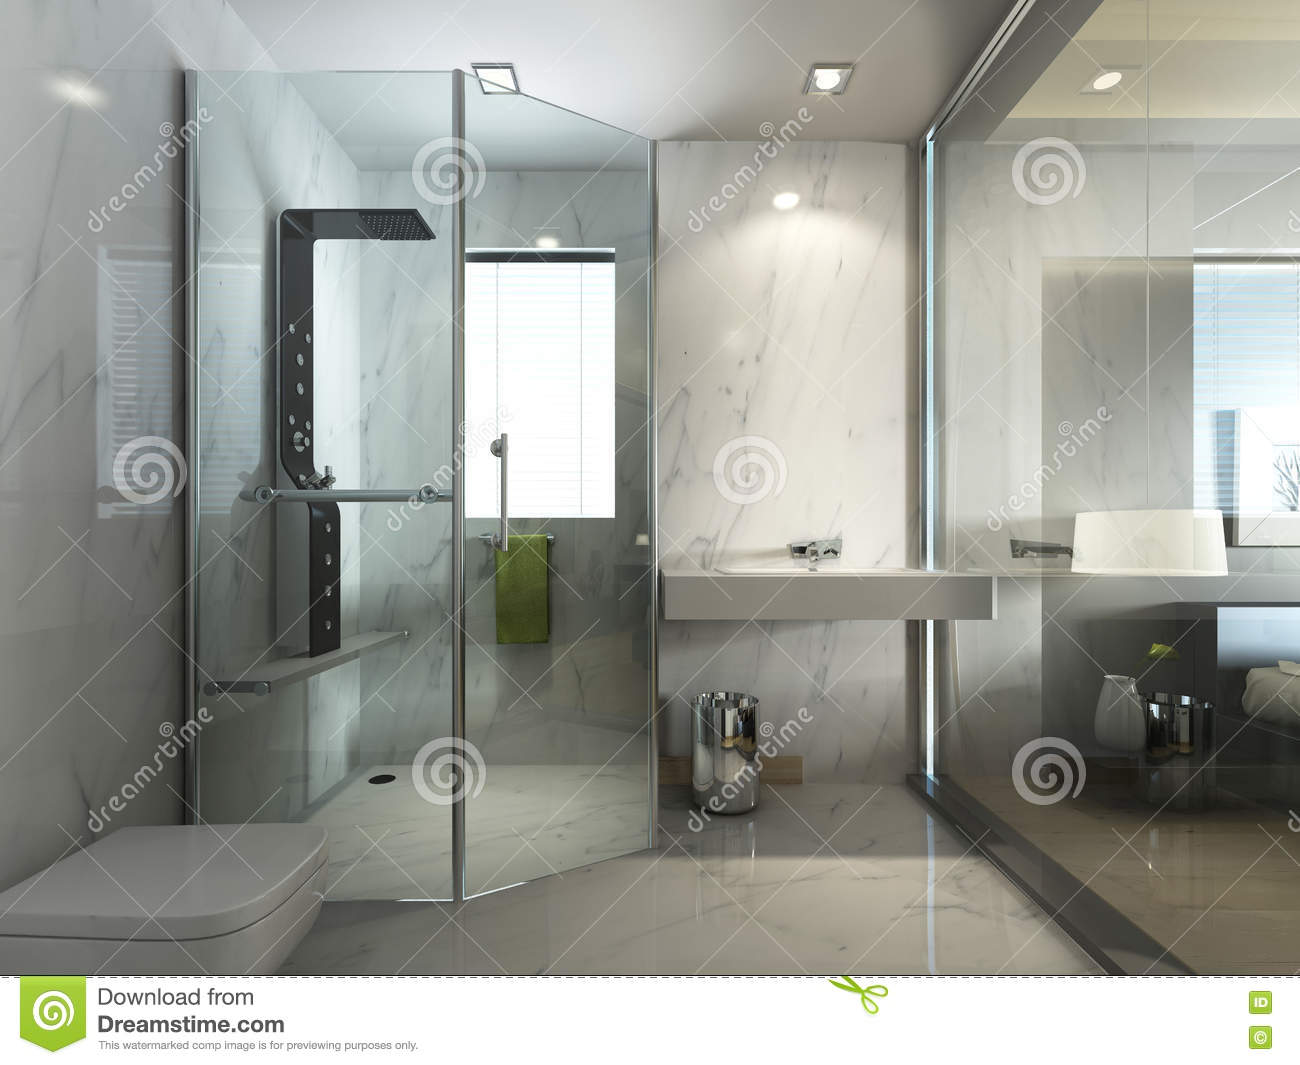 Transparent glass bathroom with shower and wc stock illustration